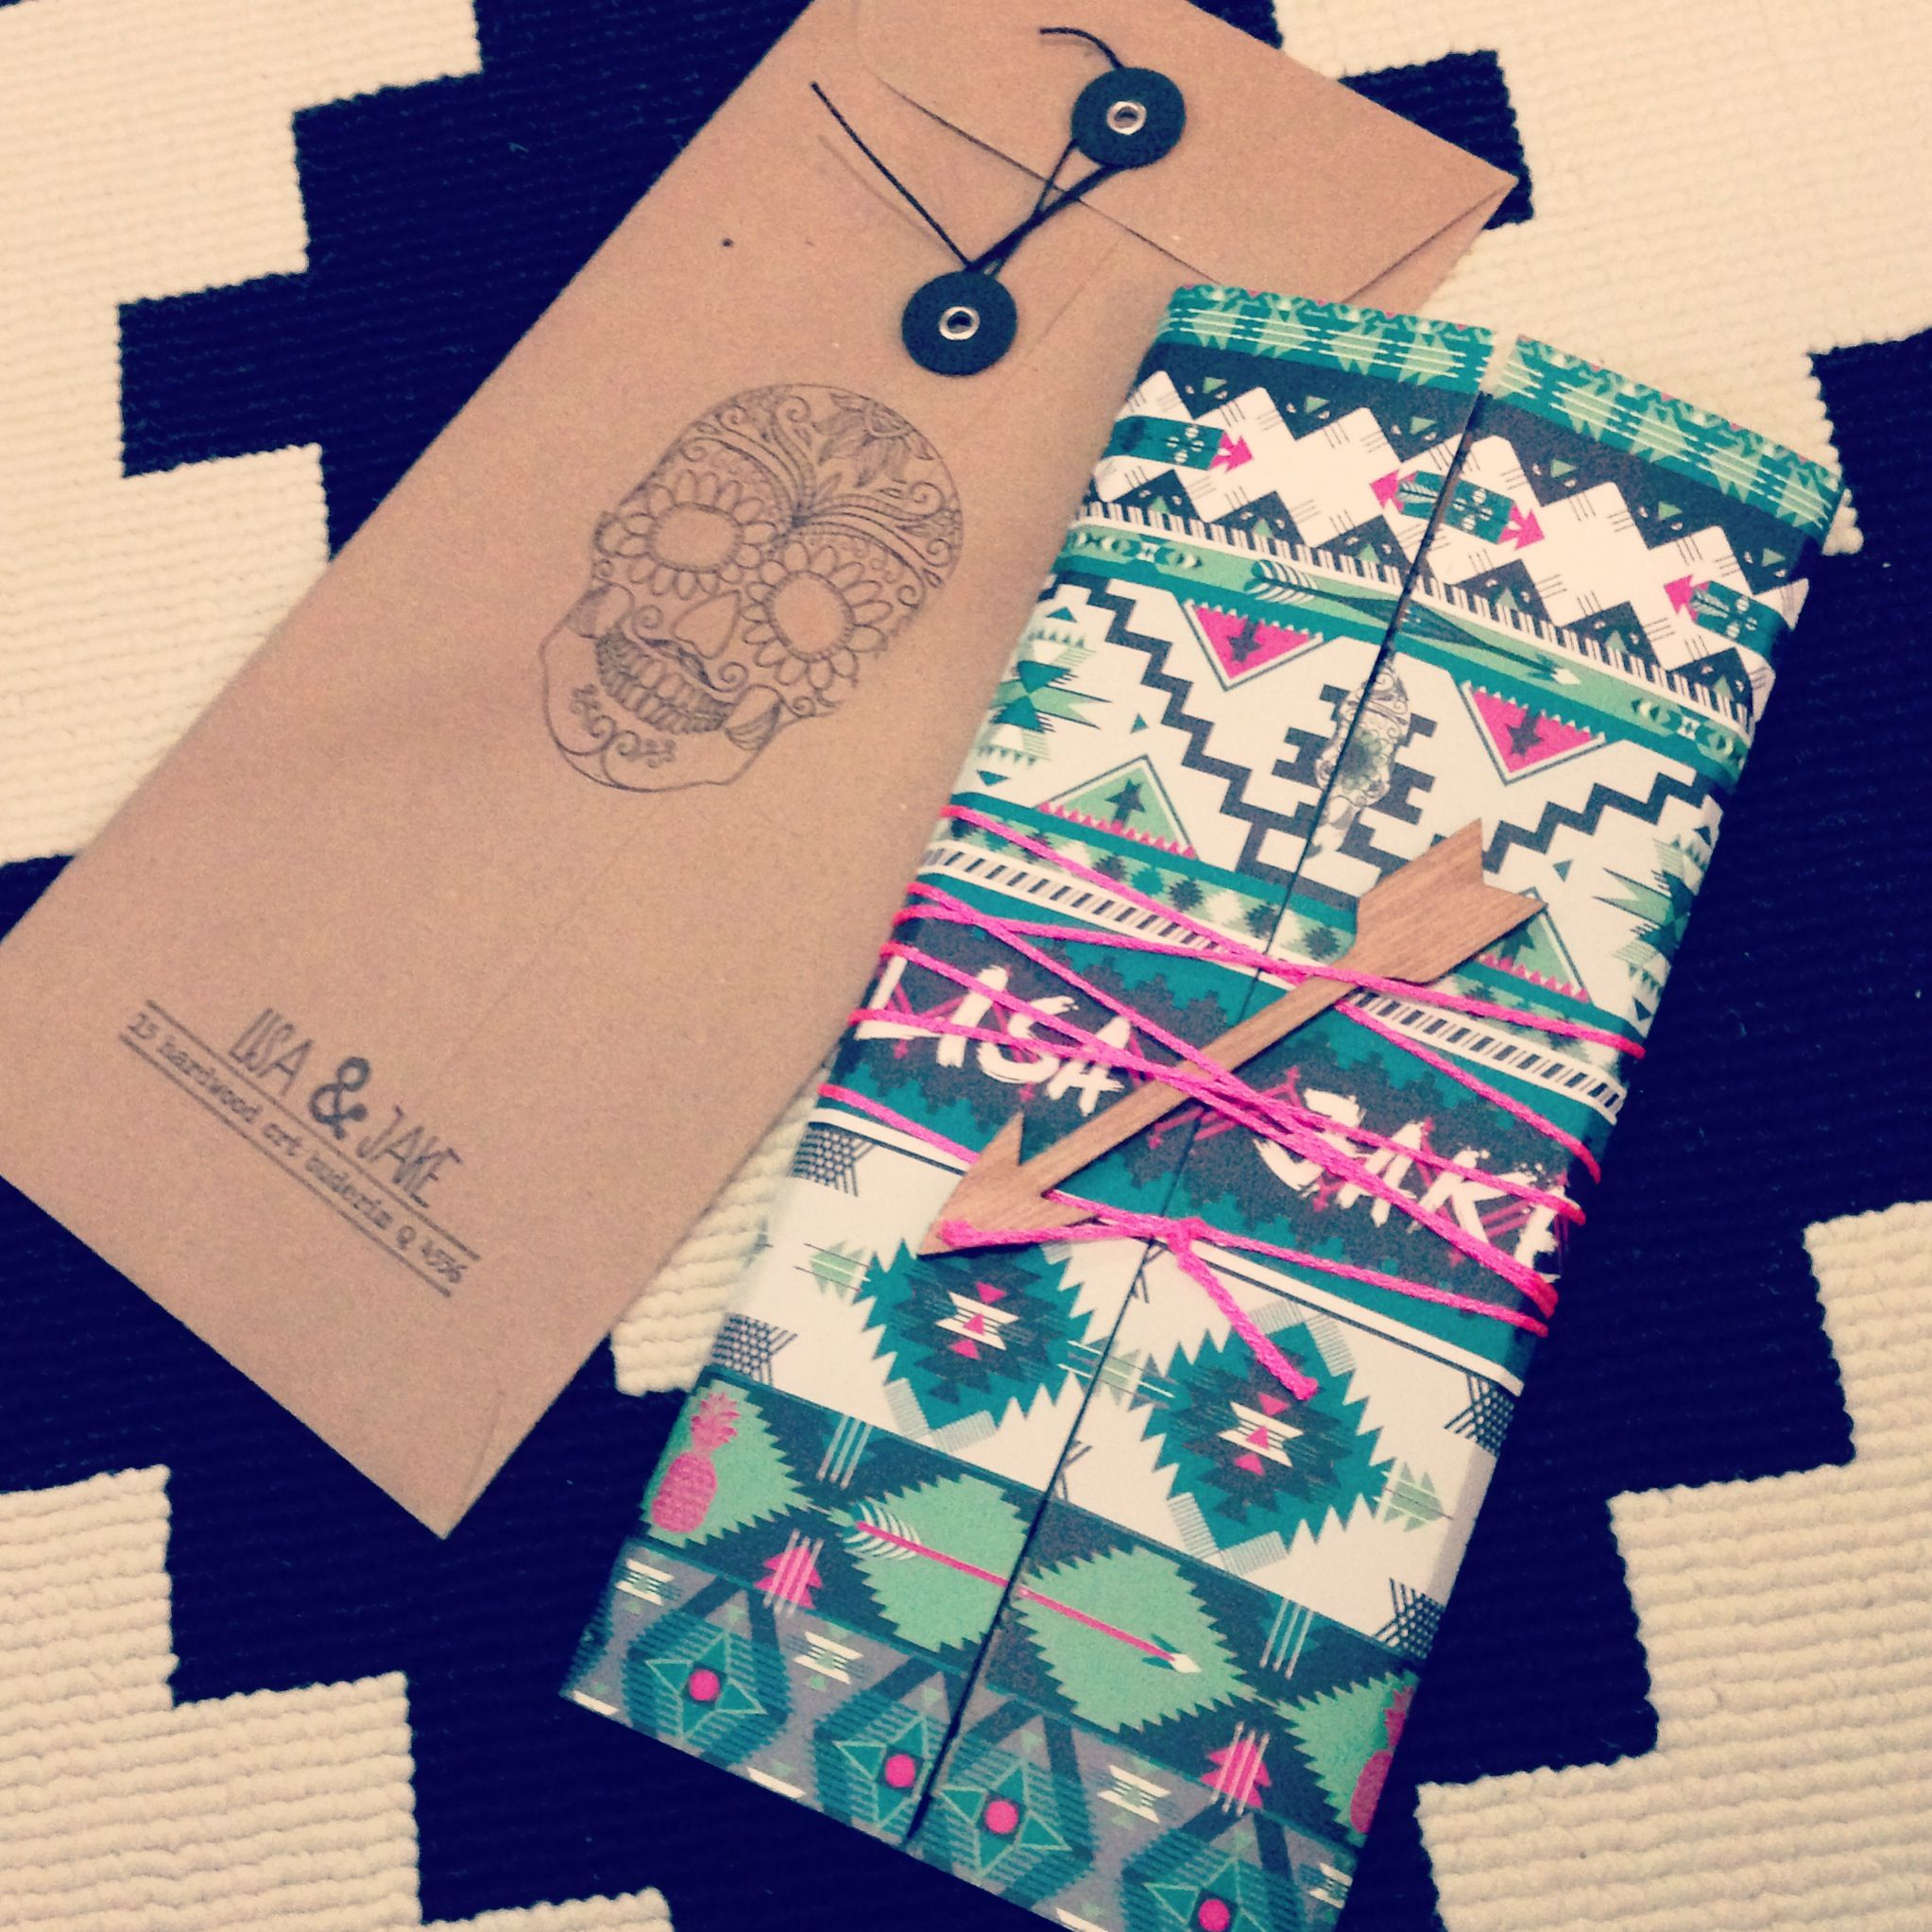 Aztec mexican wedding invitations www.ivyinvite.com.au